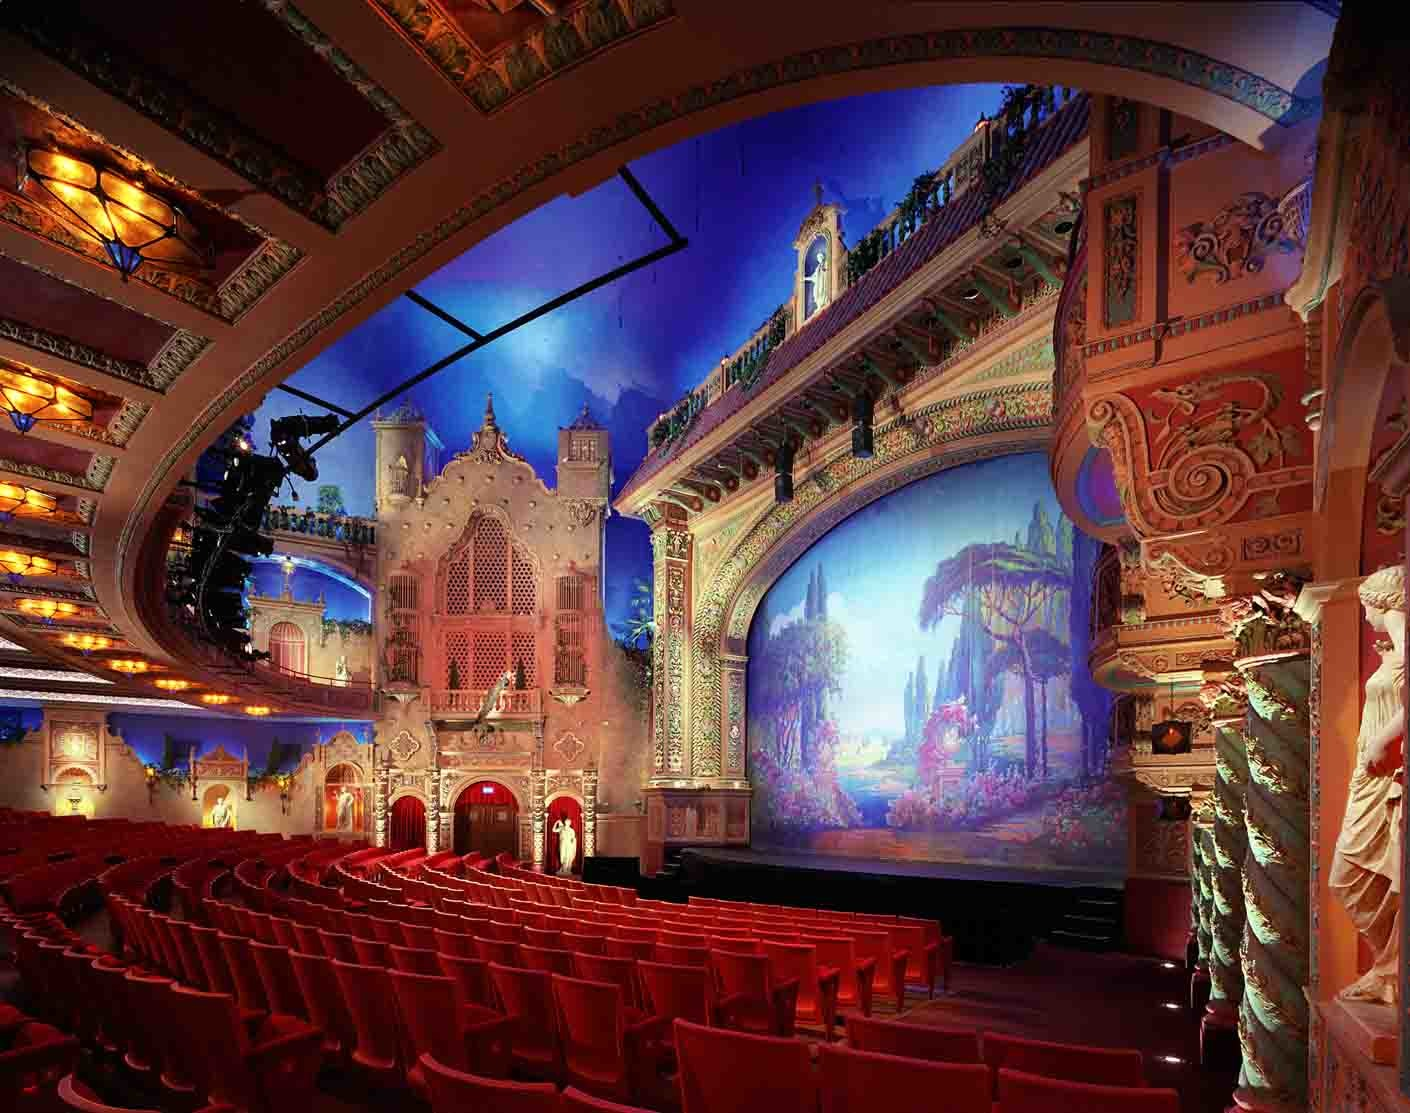 Olympia Theater at Gusman Center for the Performing Arts